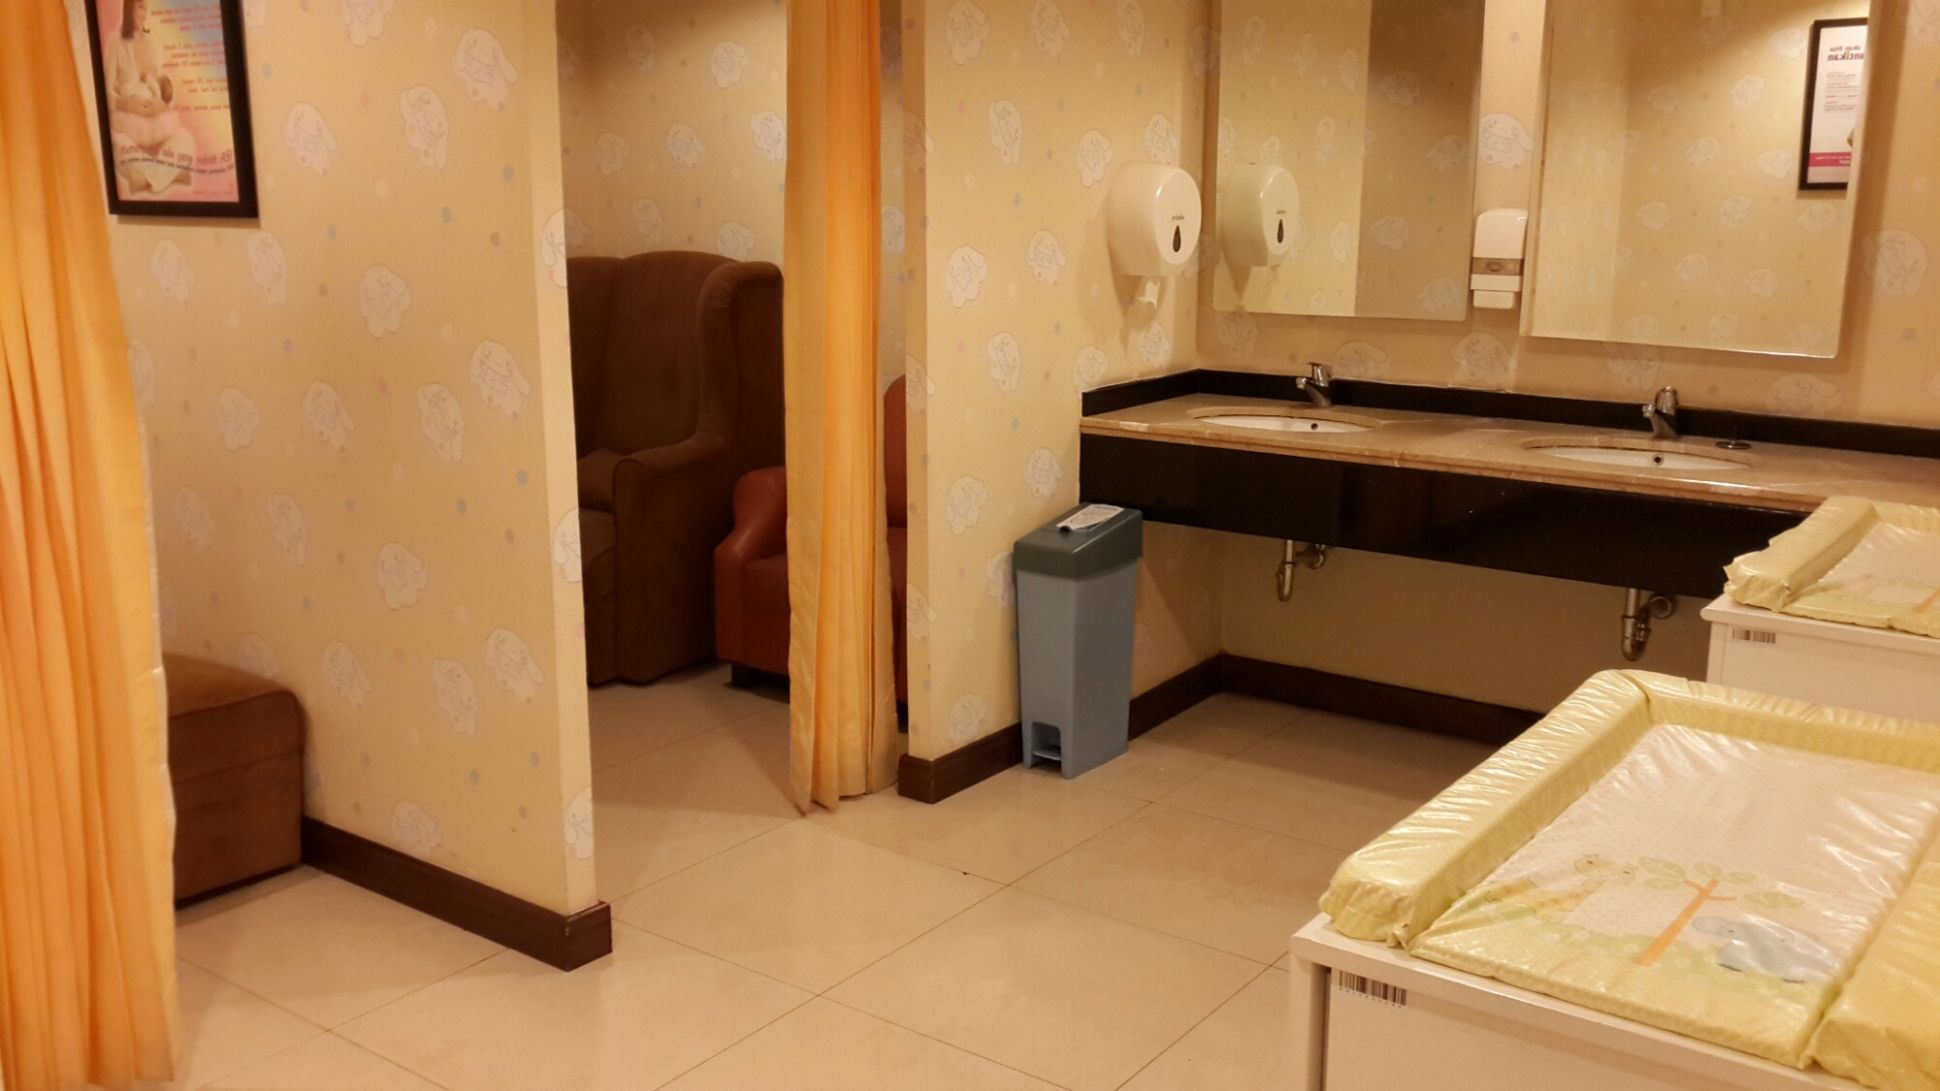 Mom and baby changing room at Pacific Place – Rawcktober's story